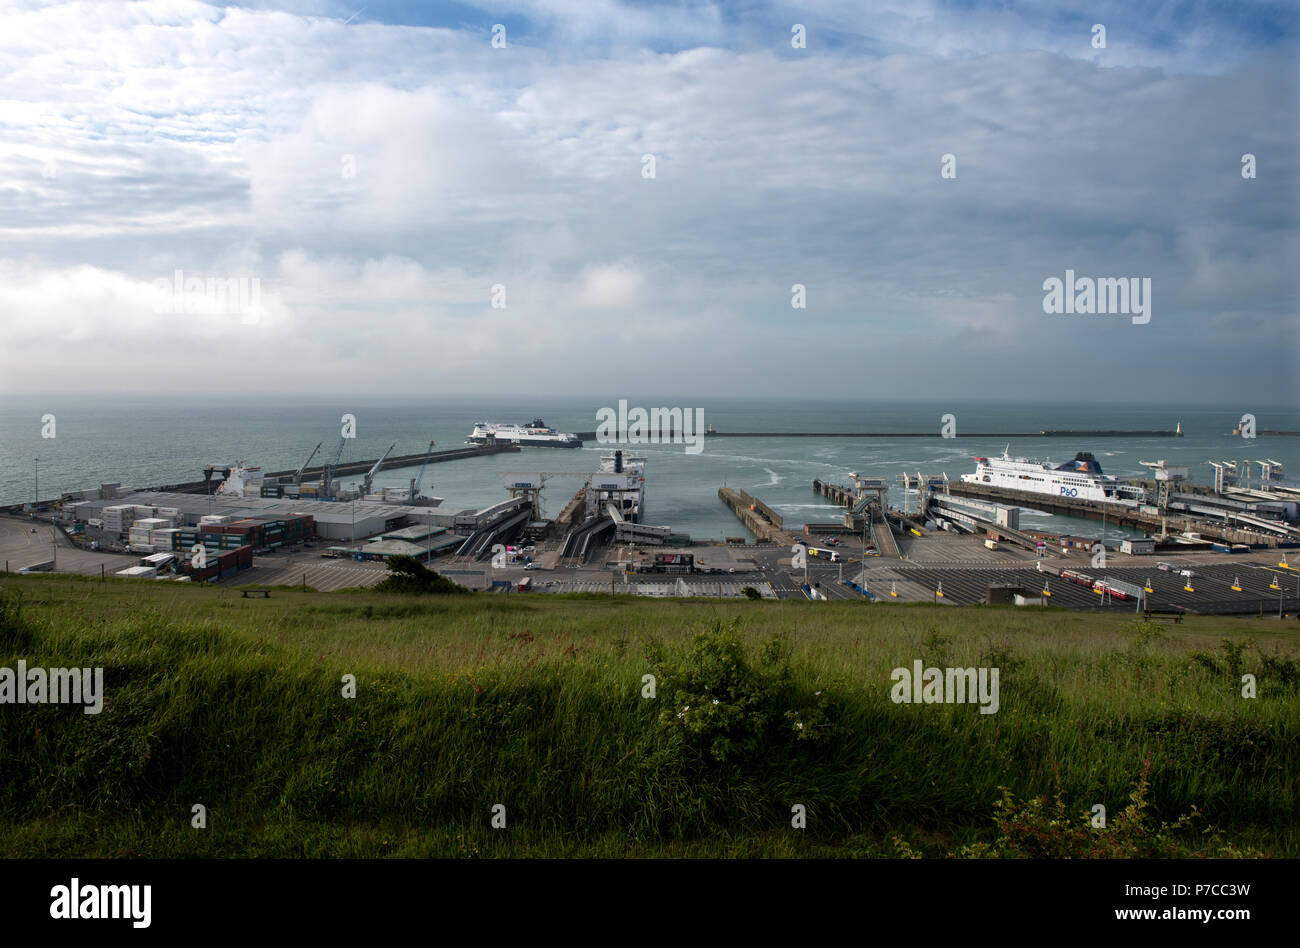 Port of Cover photographed from the White Cliffs of Dover. The Port of Dover is the cross-channel port situated in Dover, Kent, south-east England. It - Stock Image